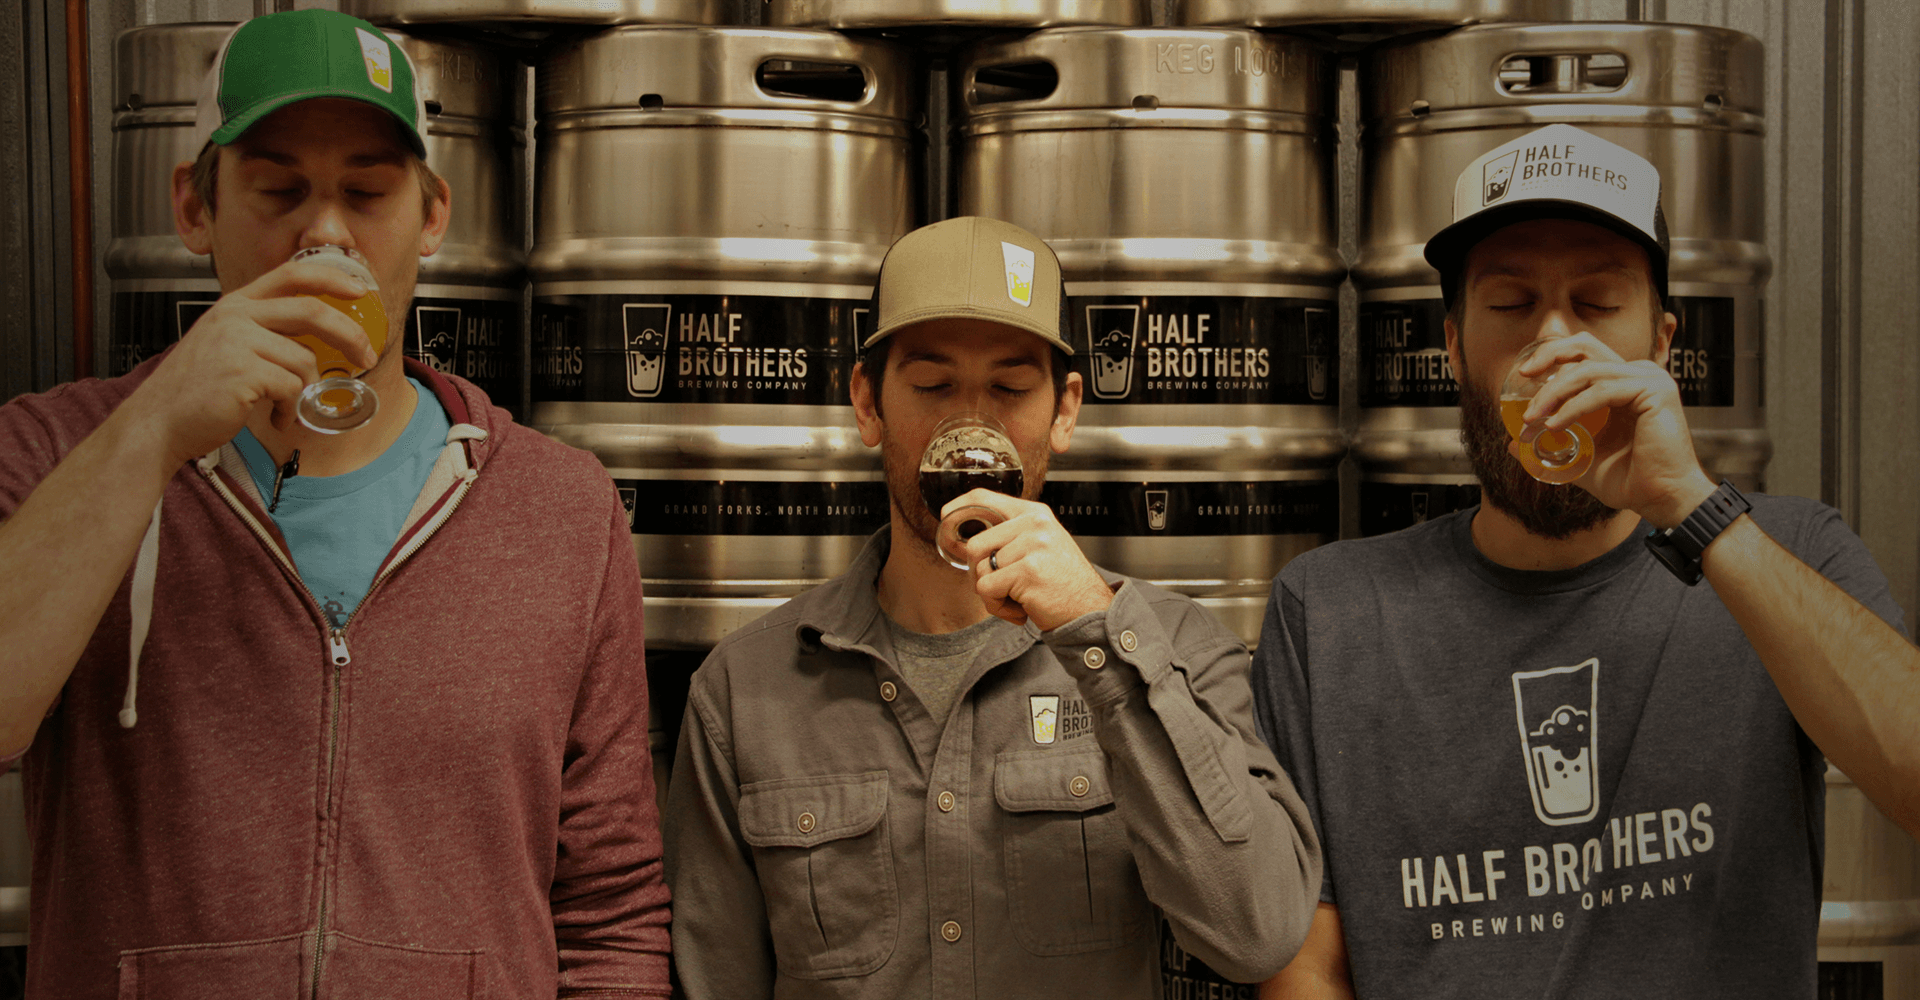 About Half Brothers Brewing